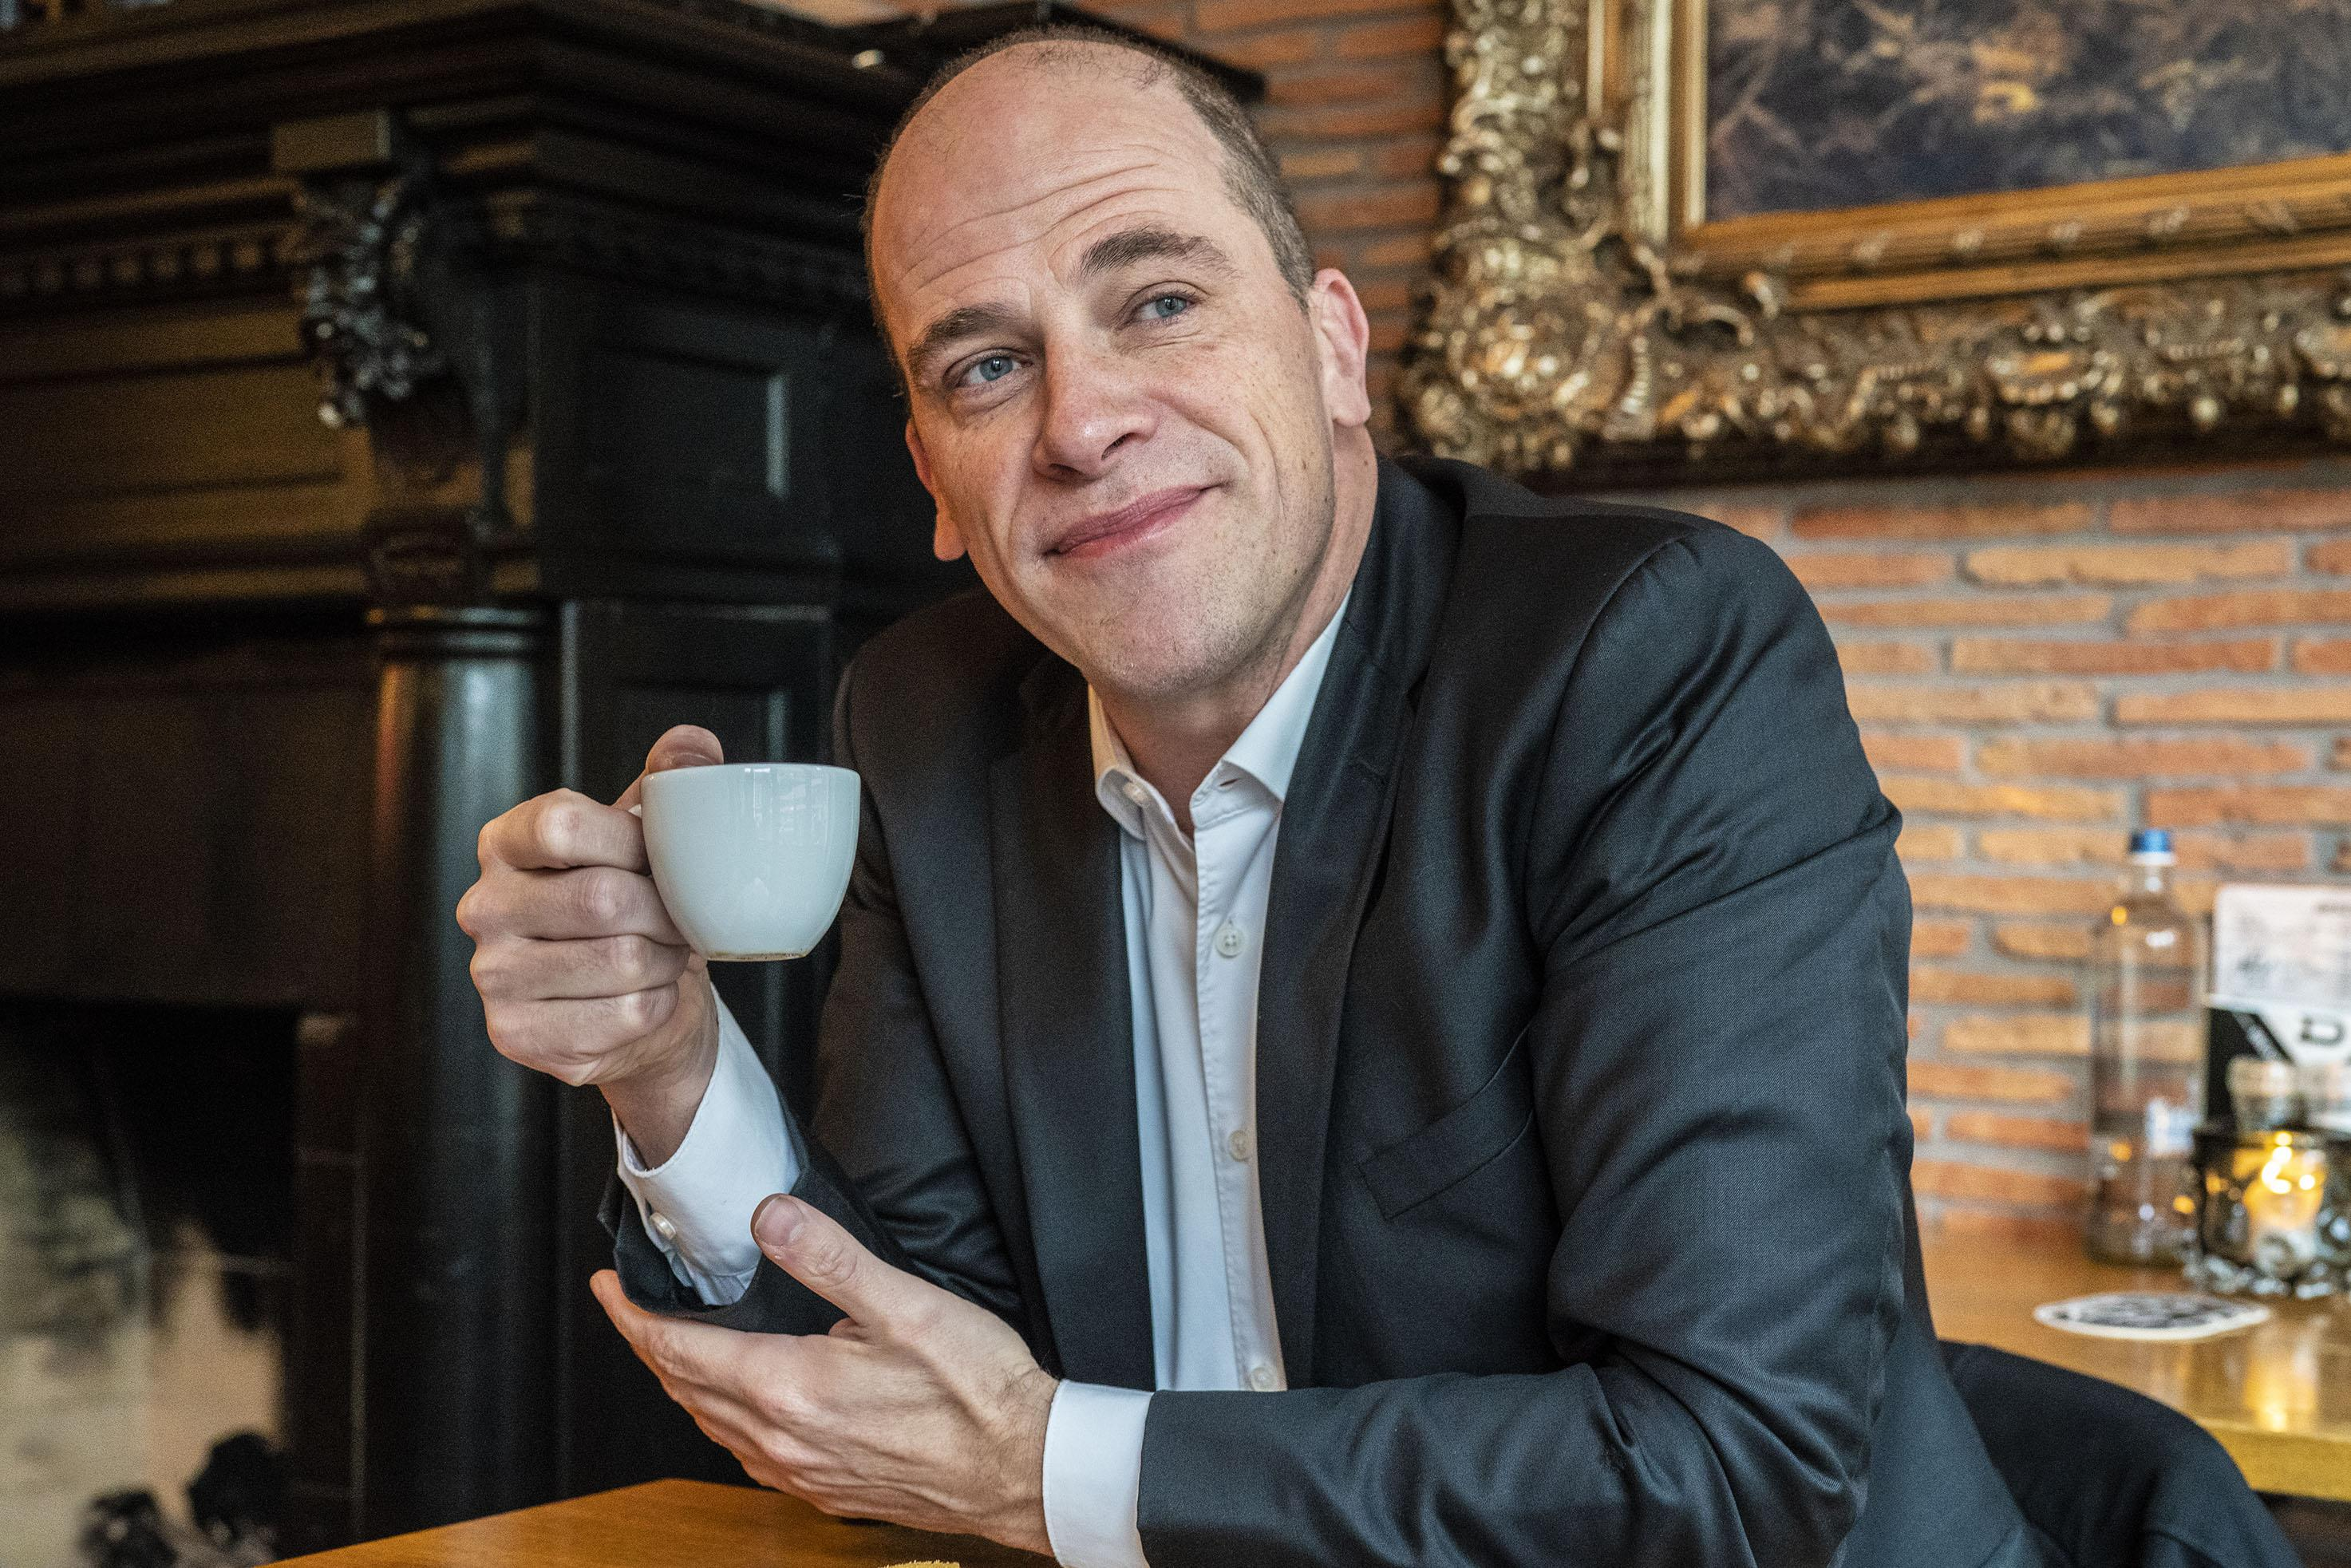 Universiteit Leiden streamt lezing Diederik Samsom over 'Green Deal'